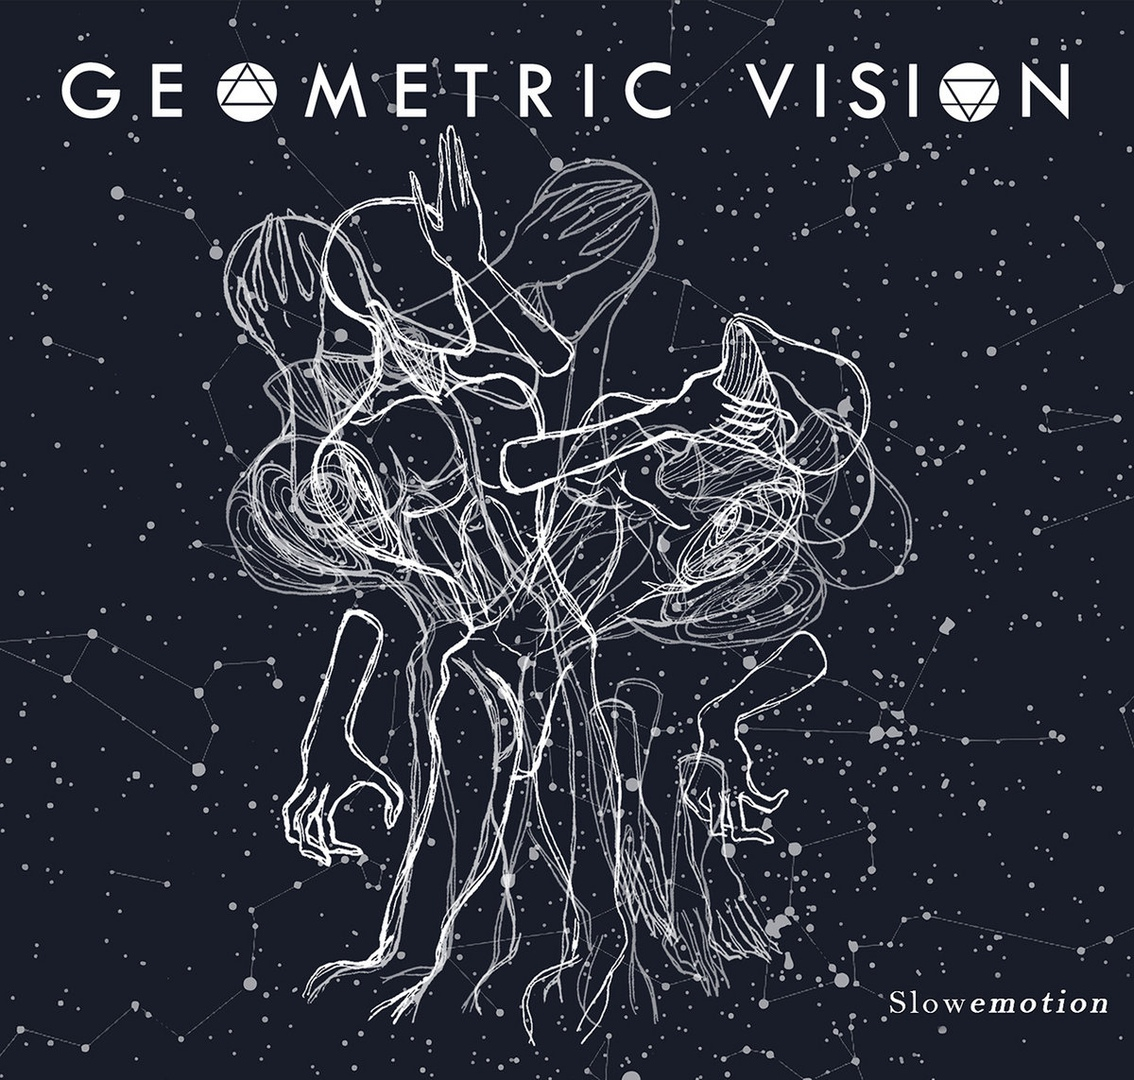 Geometric Vision - Slowemotion [EP]